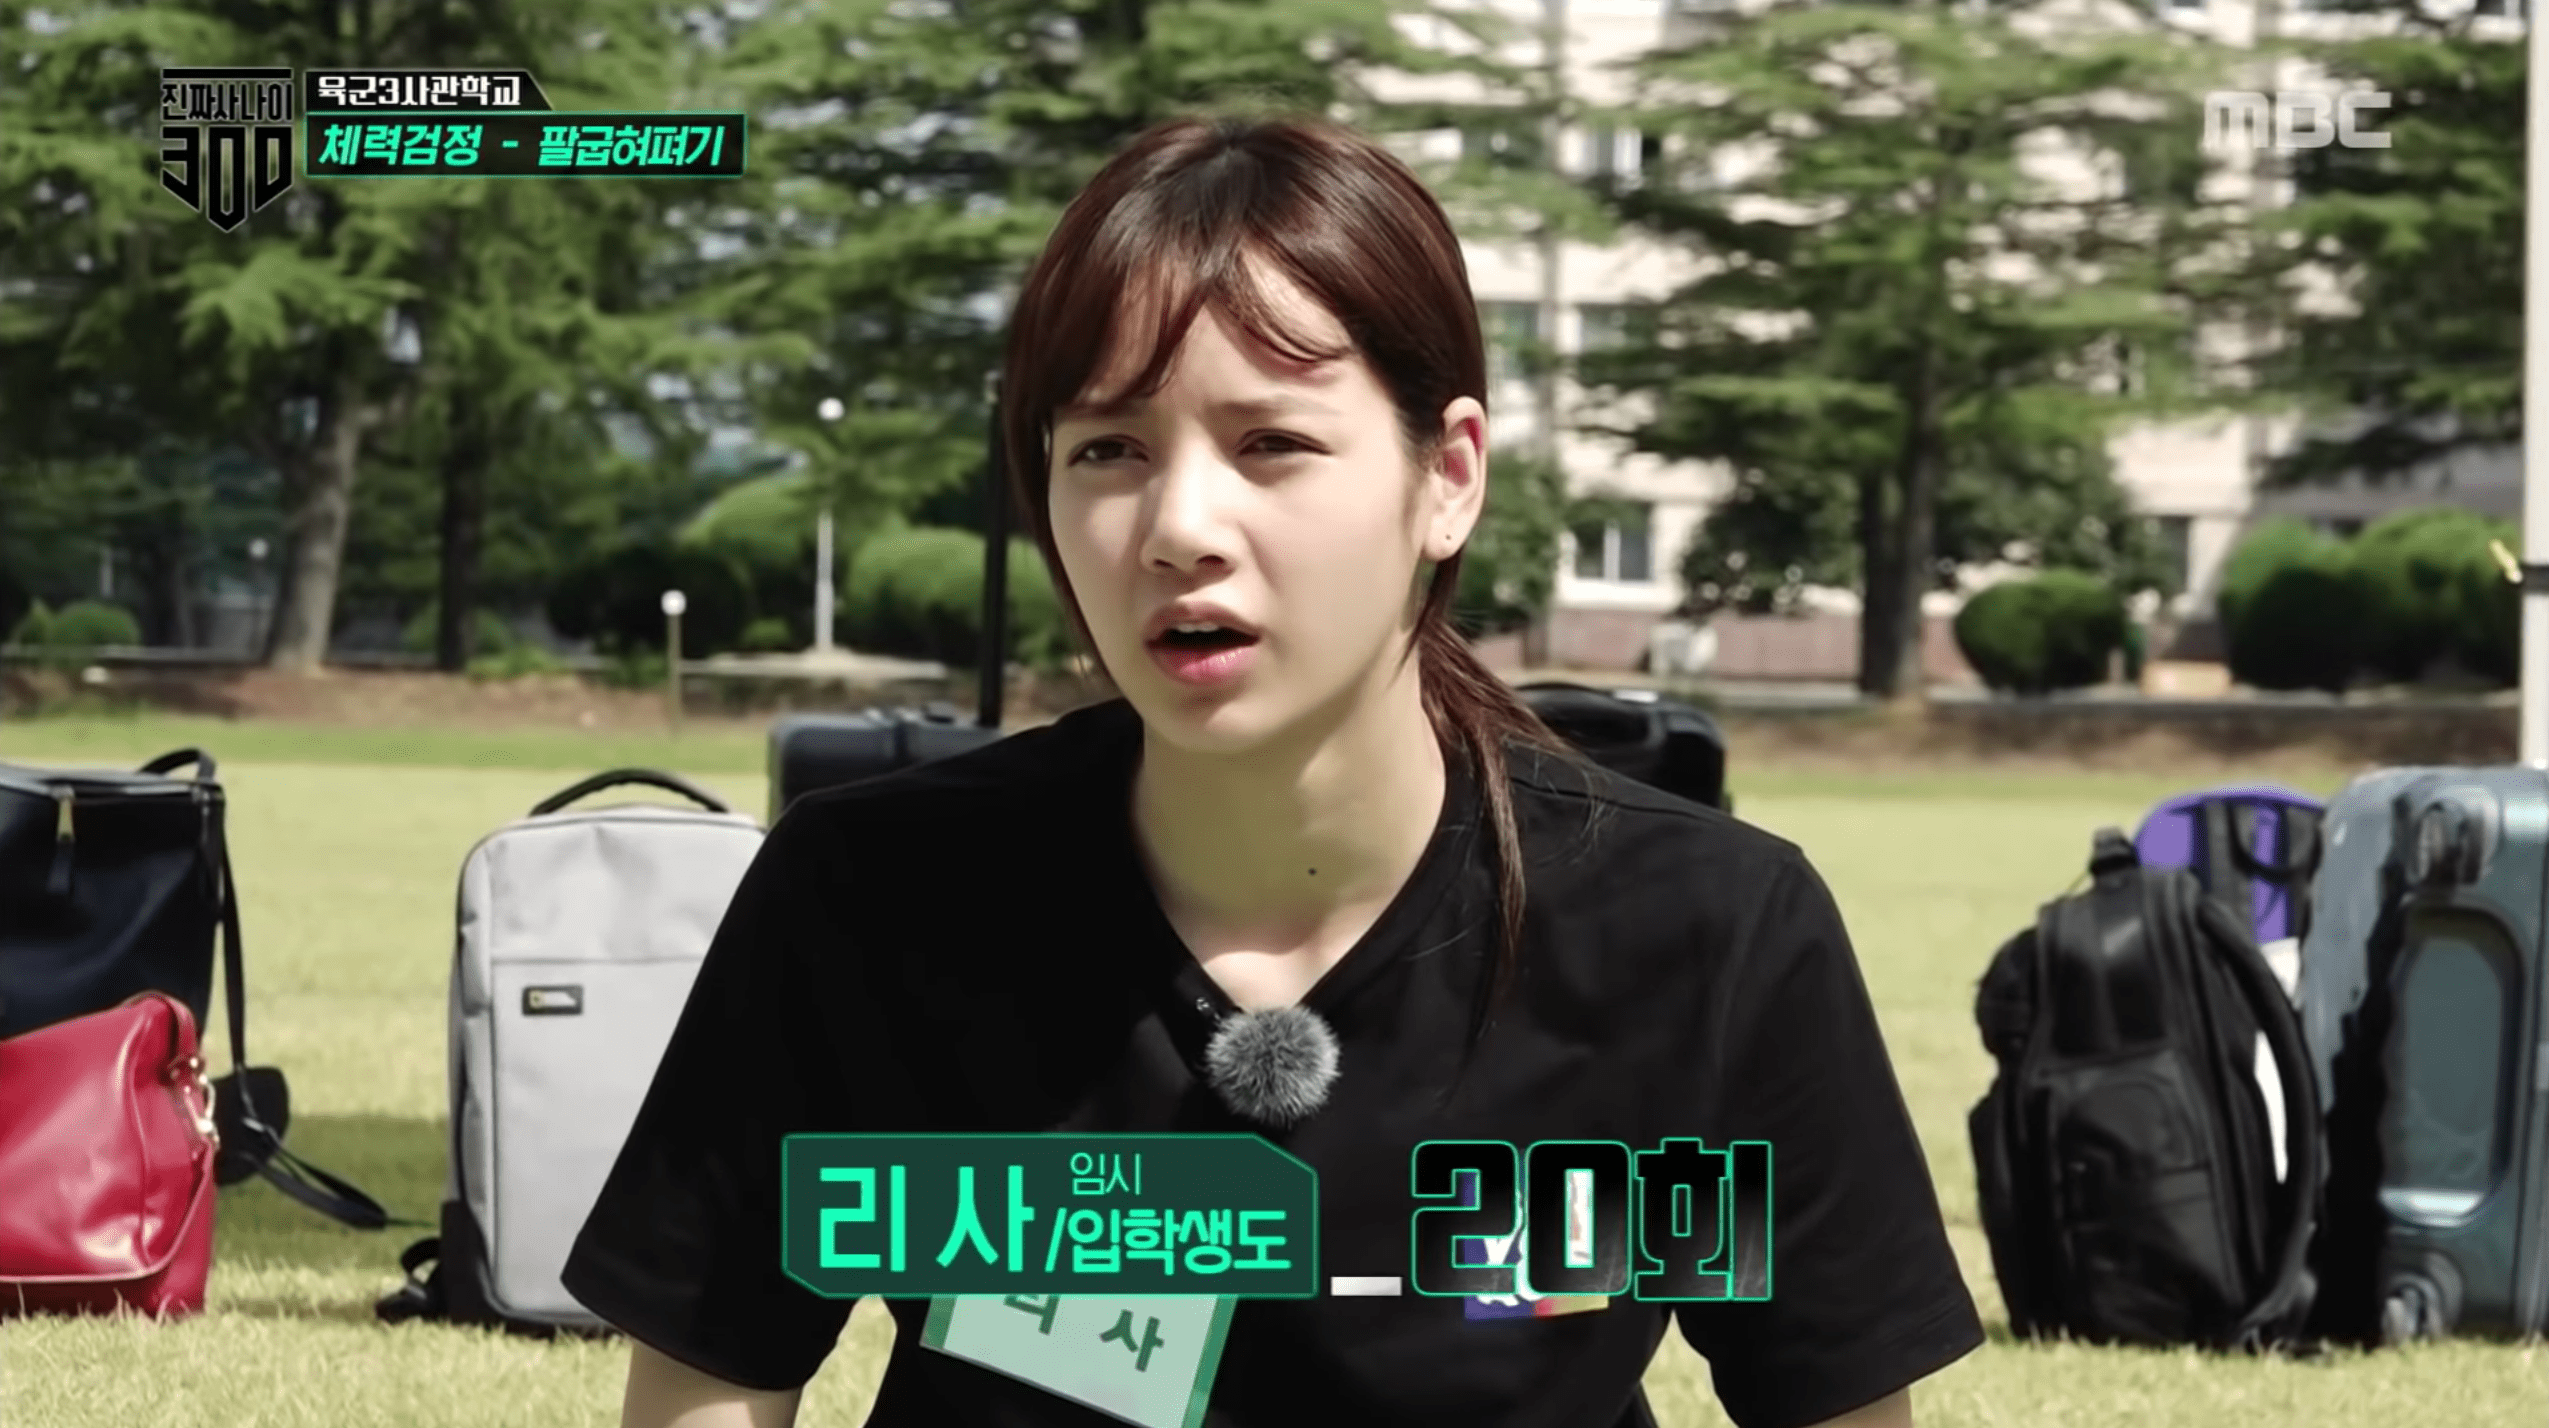 Blackpink S Lisa Impresses Everyone With Her Strength On Real Men